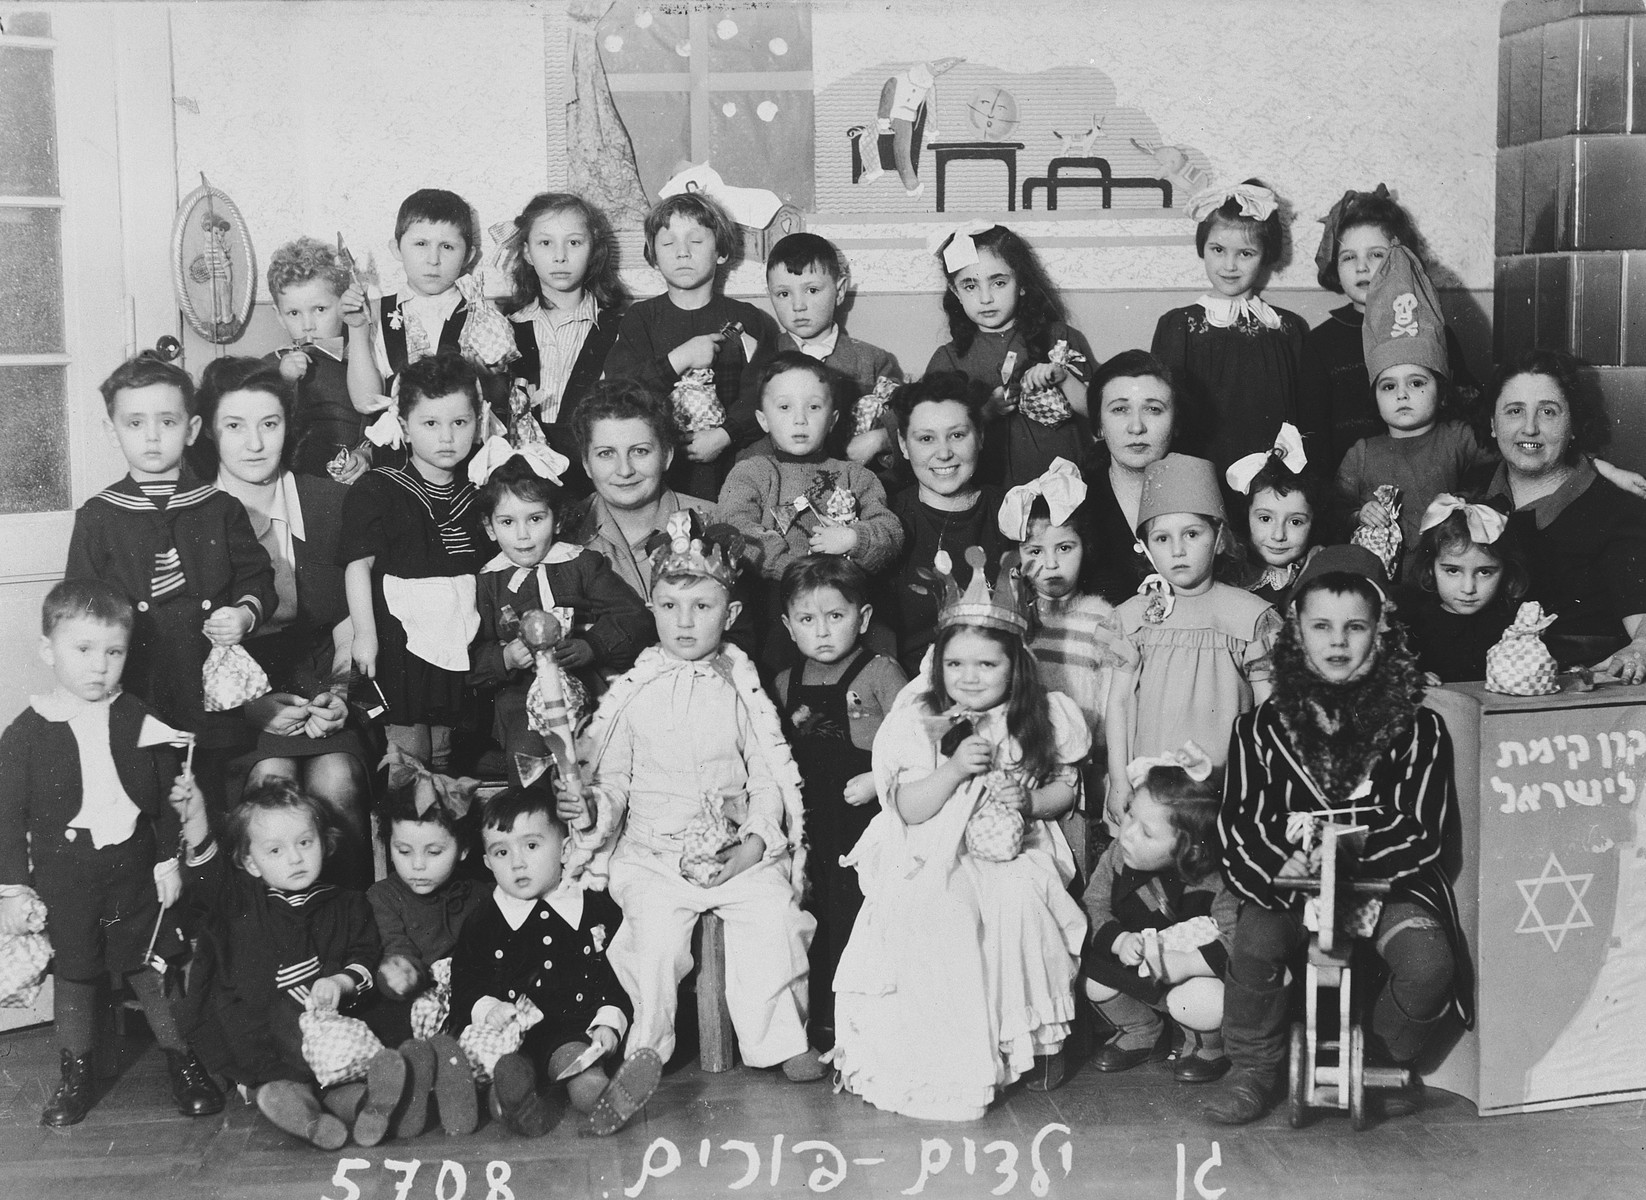 Group portrait of Jewish kindergarten children, some in costume, celebrating Purim in Lodz after the war.  Next to them is a large Keren Kayemet box.  Among those pictured is a teacher, Rachel Grynfeld (seated smiling broadly in the center).